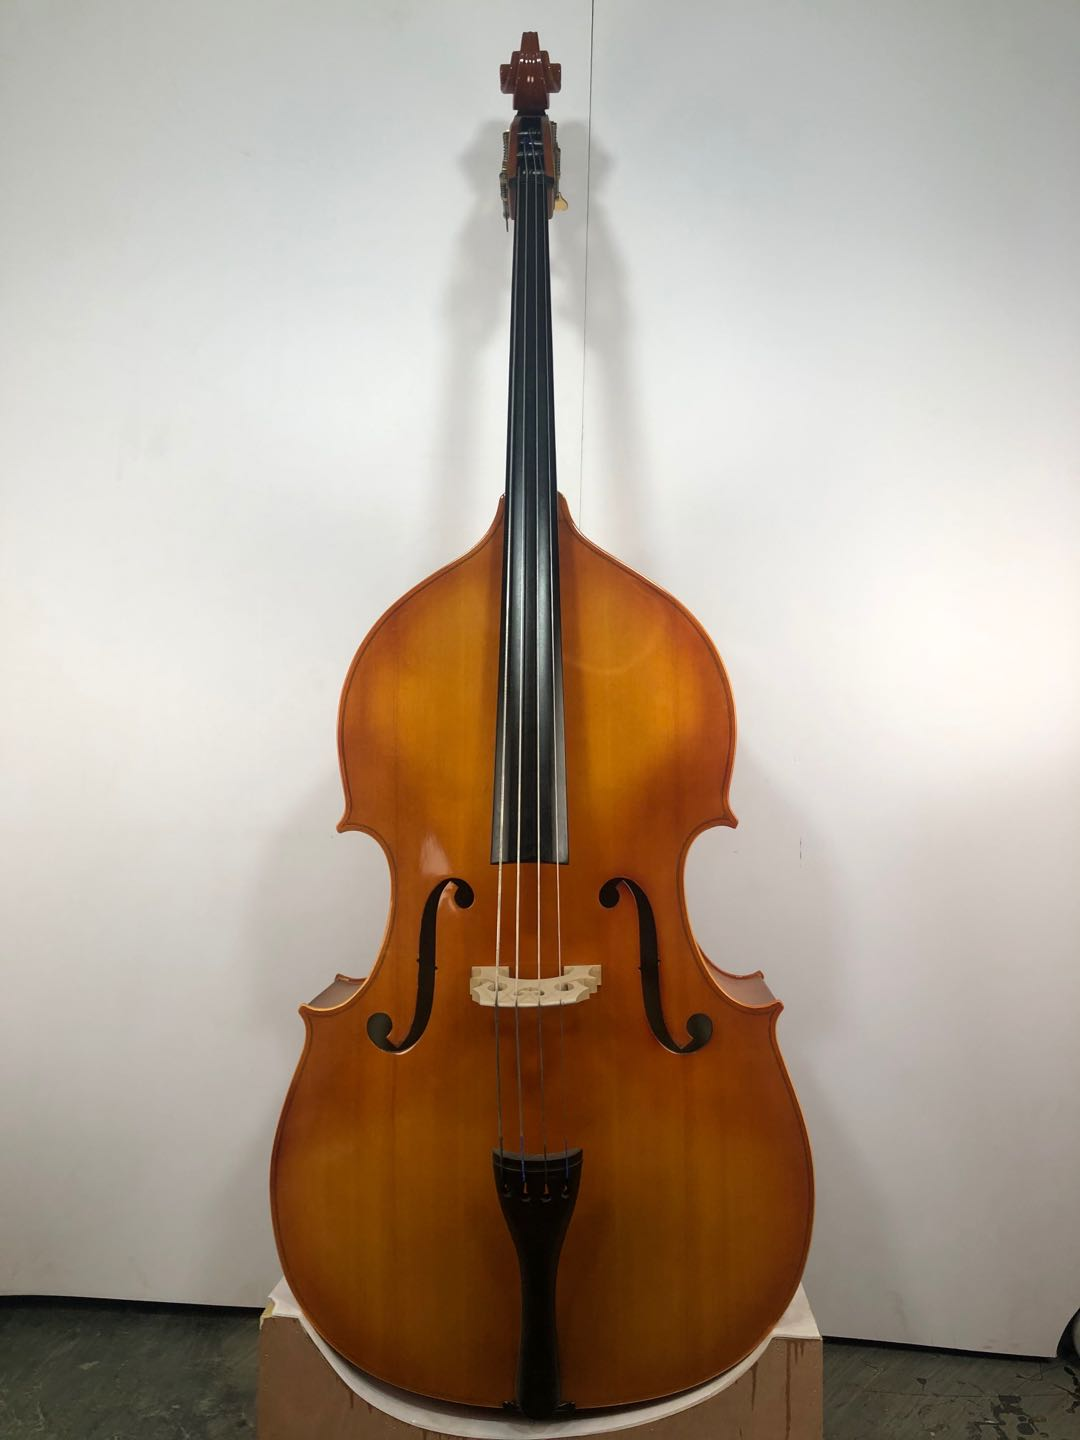 Exquisite cello 3/4 High-grade wood, beautiful appearance, sweet sound